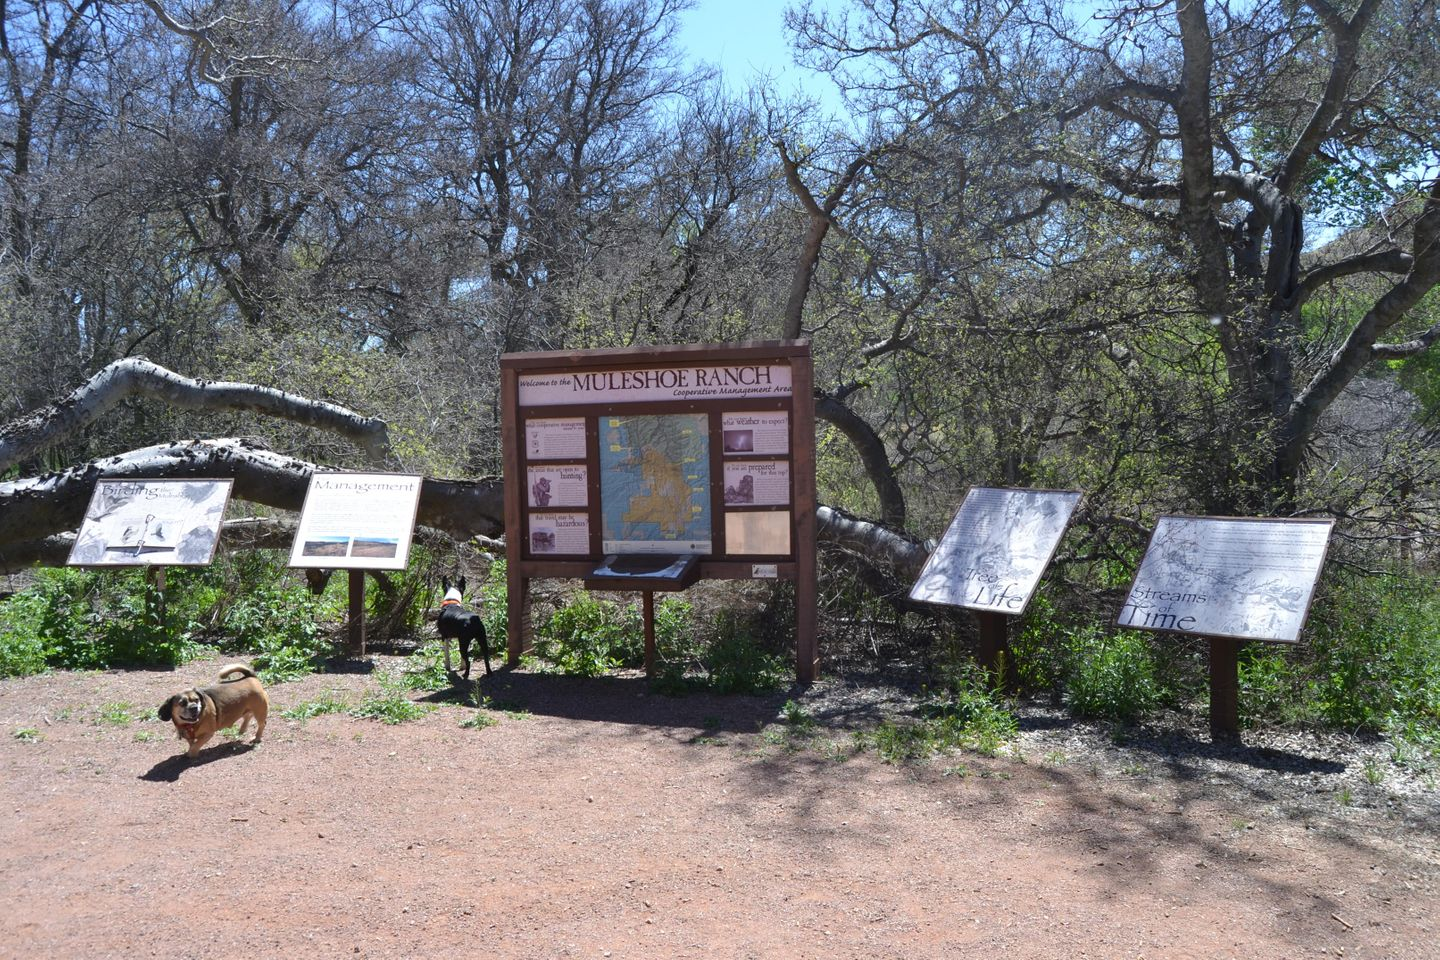 Jackson Cabin/Muleshoe Ranch Road - Waypoint 5: Sign in Kiosk - TrailHead of FR691 4x4